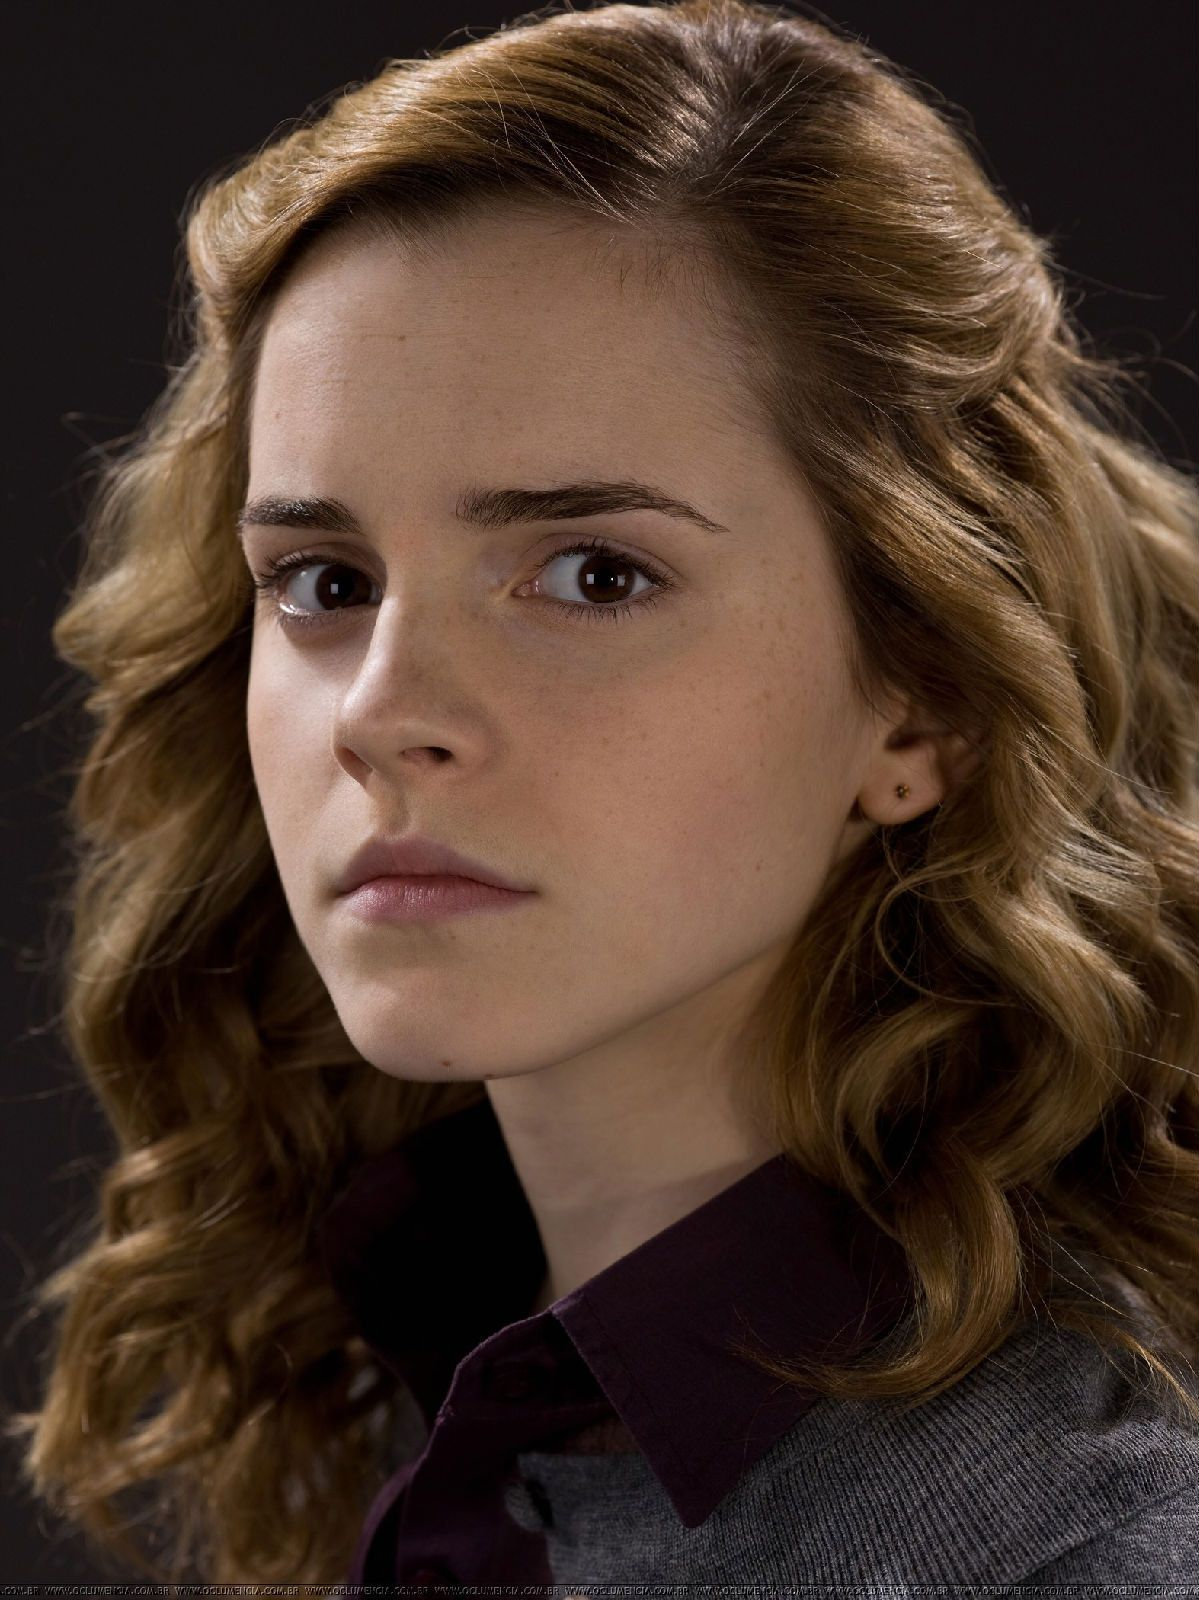 Harry Potter Photo Hermione Granger Harry Potter Hairstyles Emma Watson Harry Potter Hermione Granger Hair